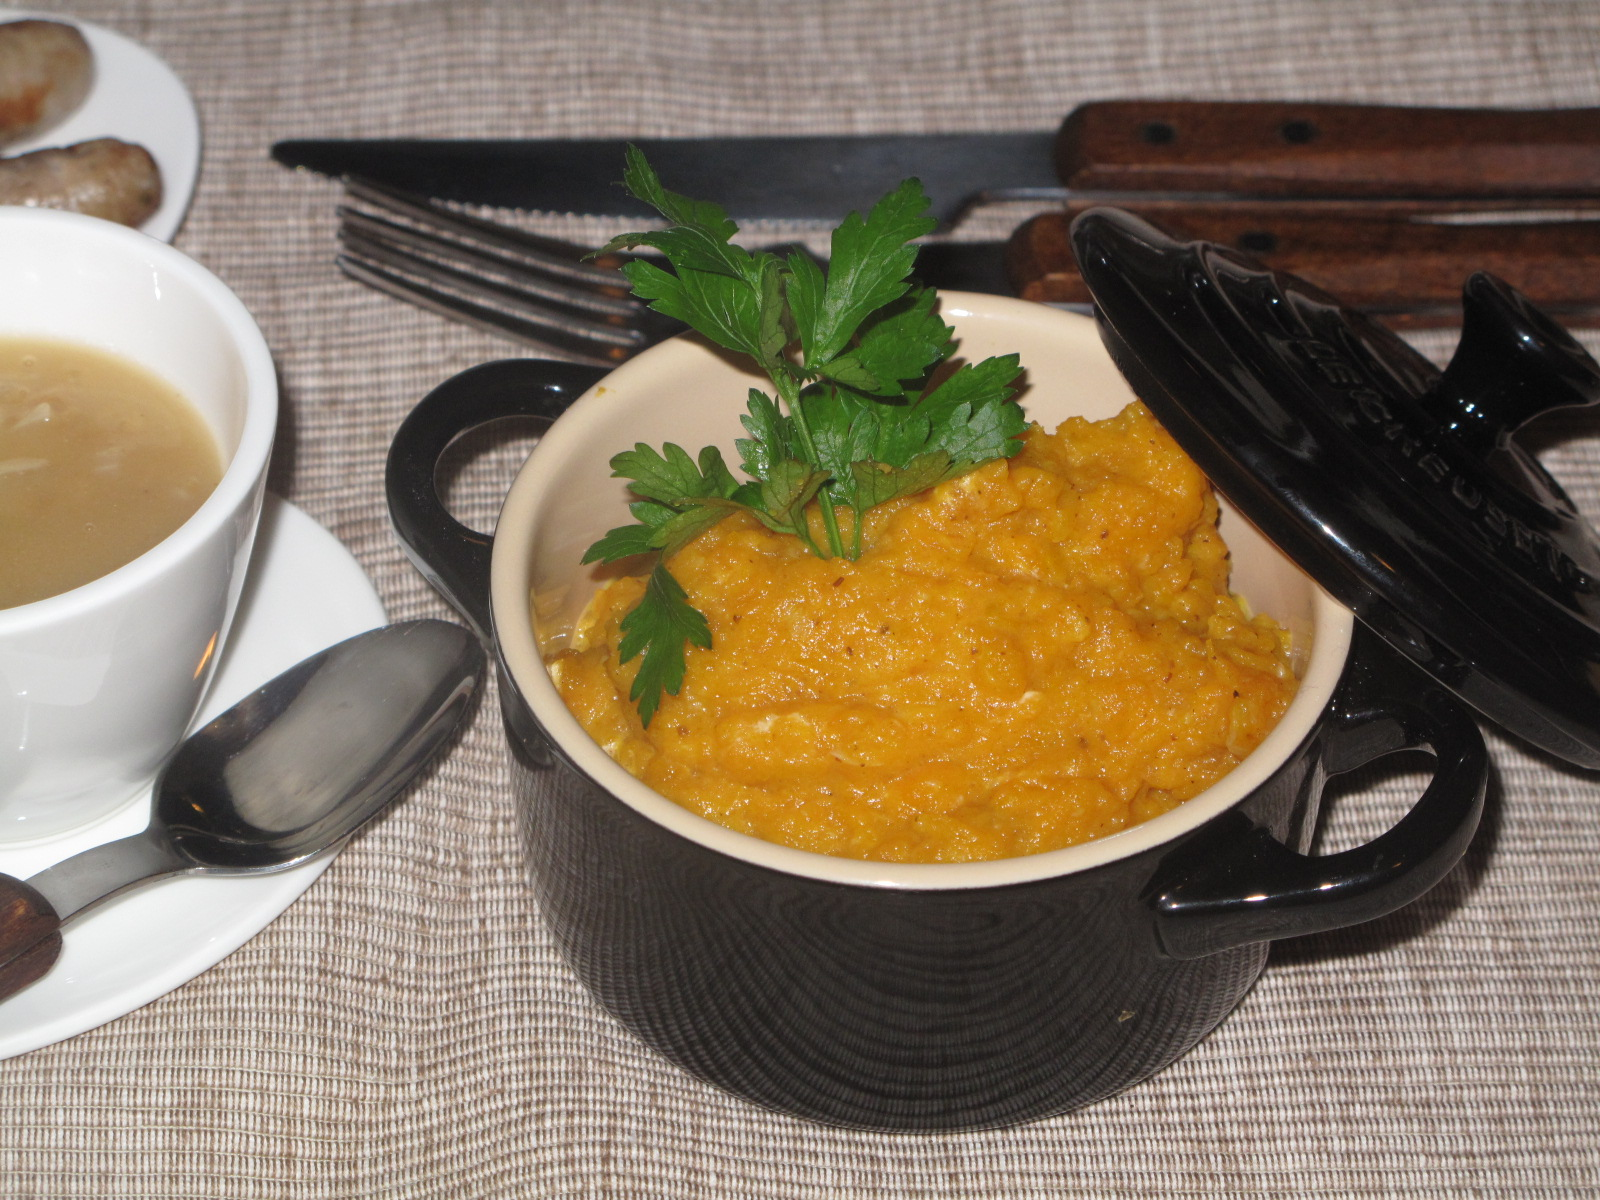 Cumin-scented puree of  Autumn 'oranges'